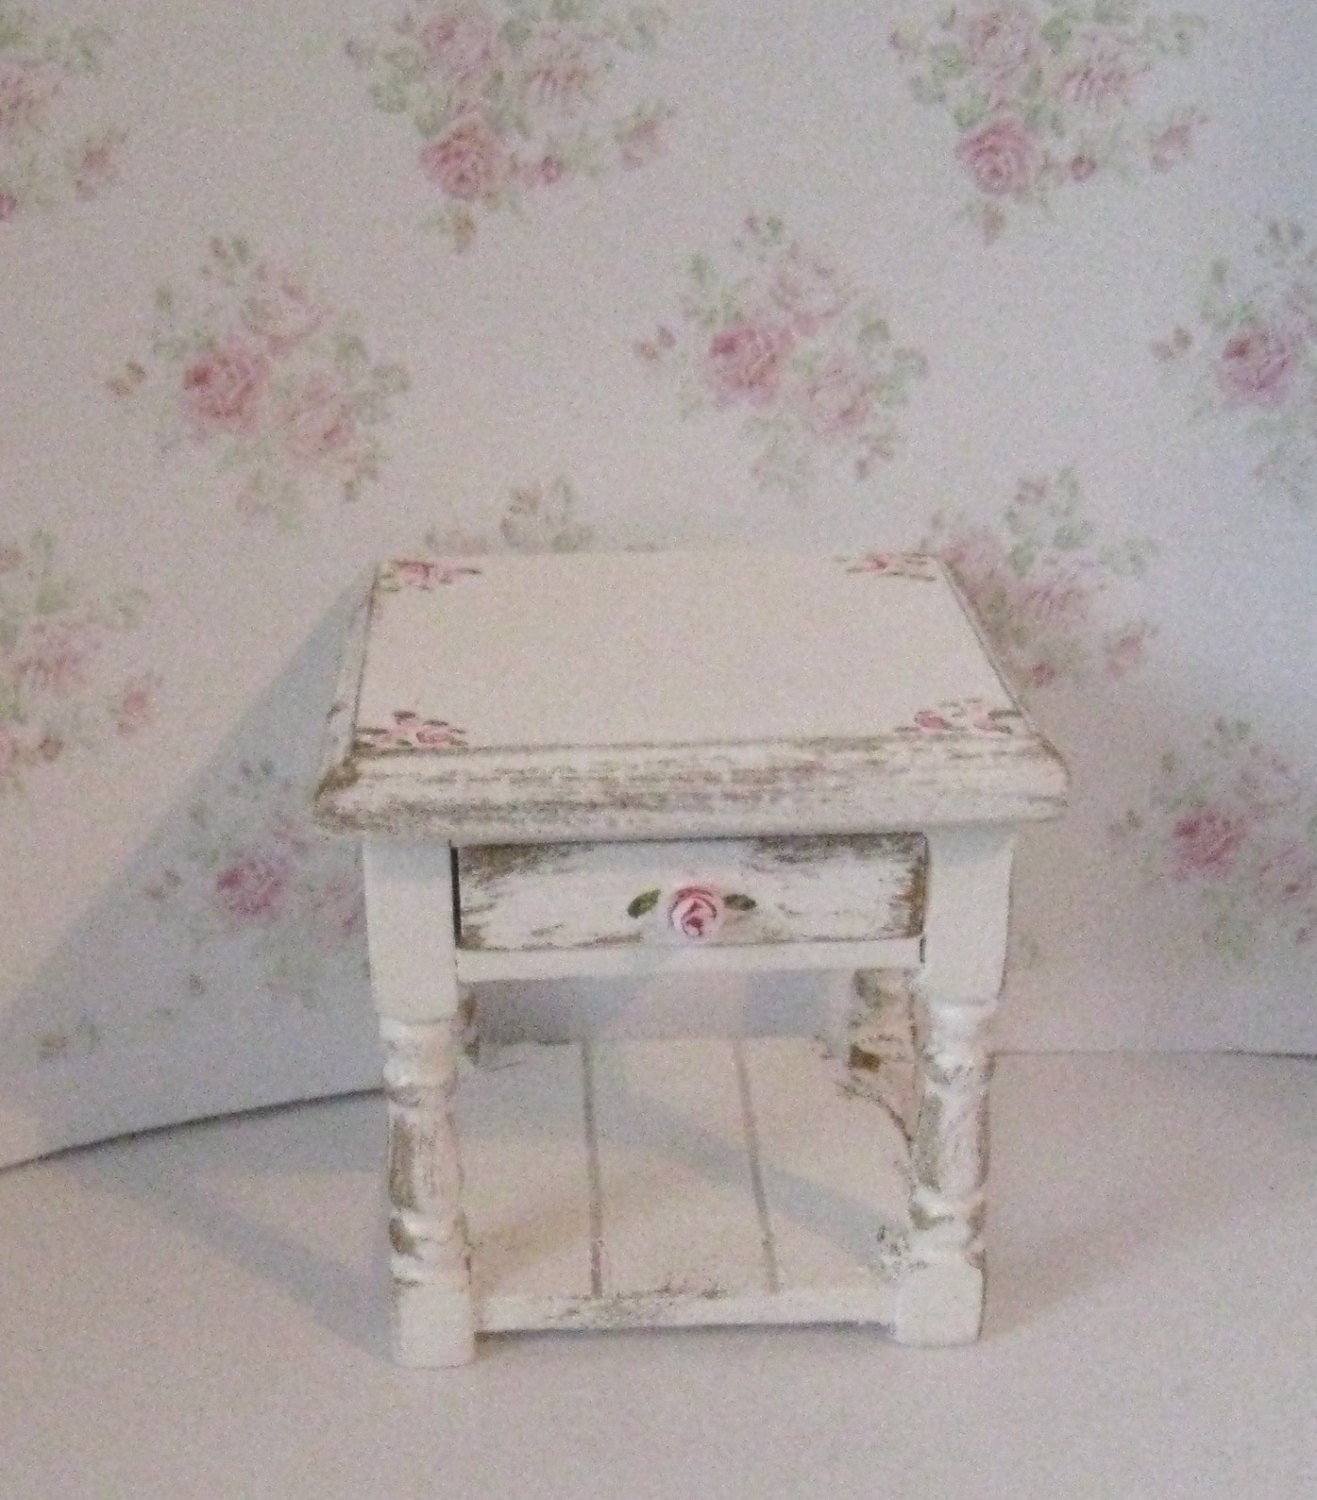 Miniature Bedside chest bedside small chest dollhouse bedside Twelfth scale dollhouse miniature